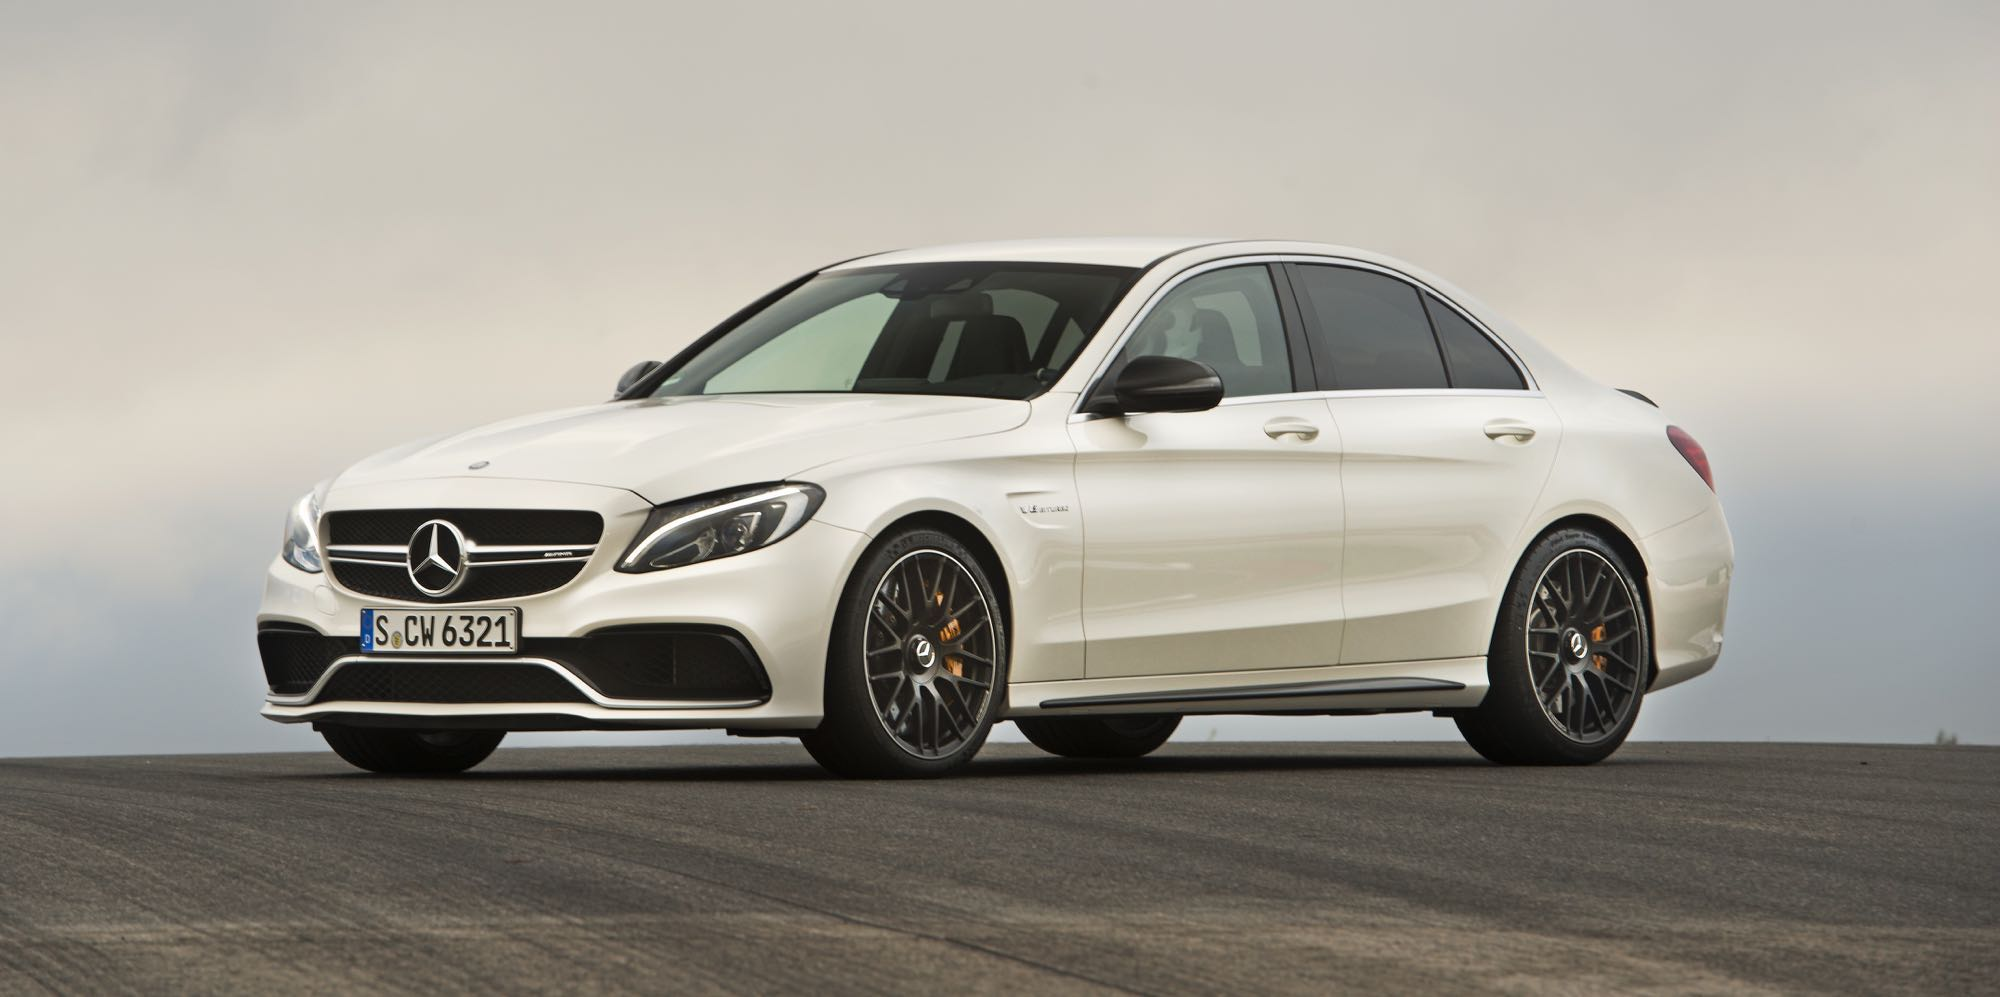 2015 Mercedes Amg C63 Pricing And Specifications Photos